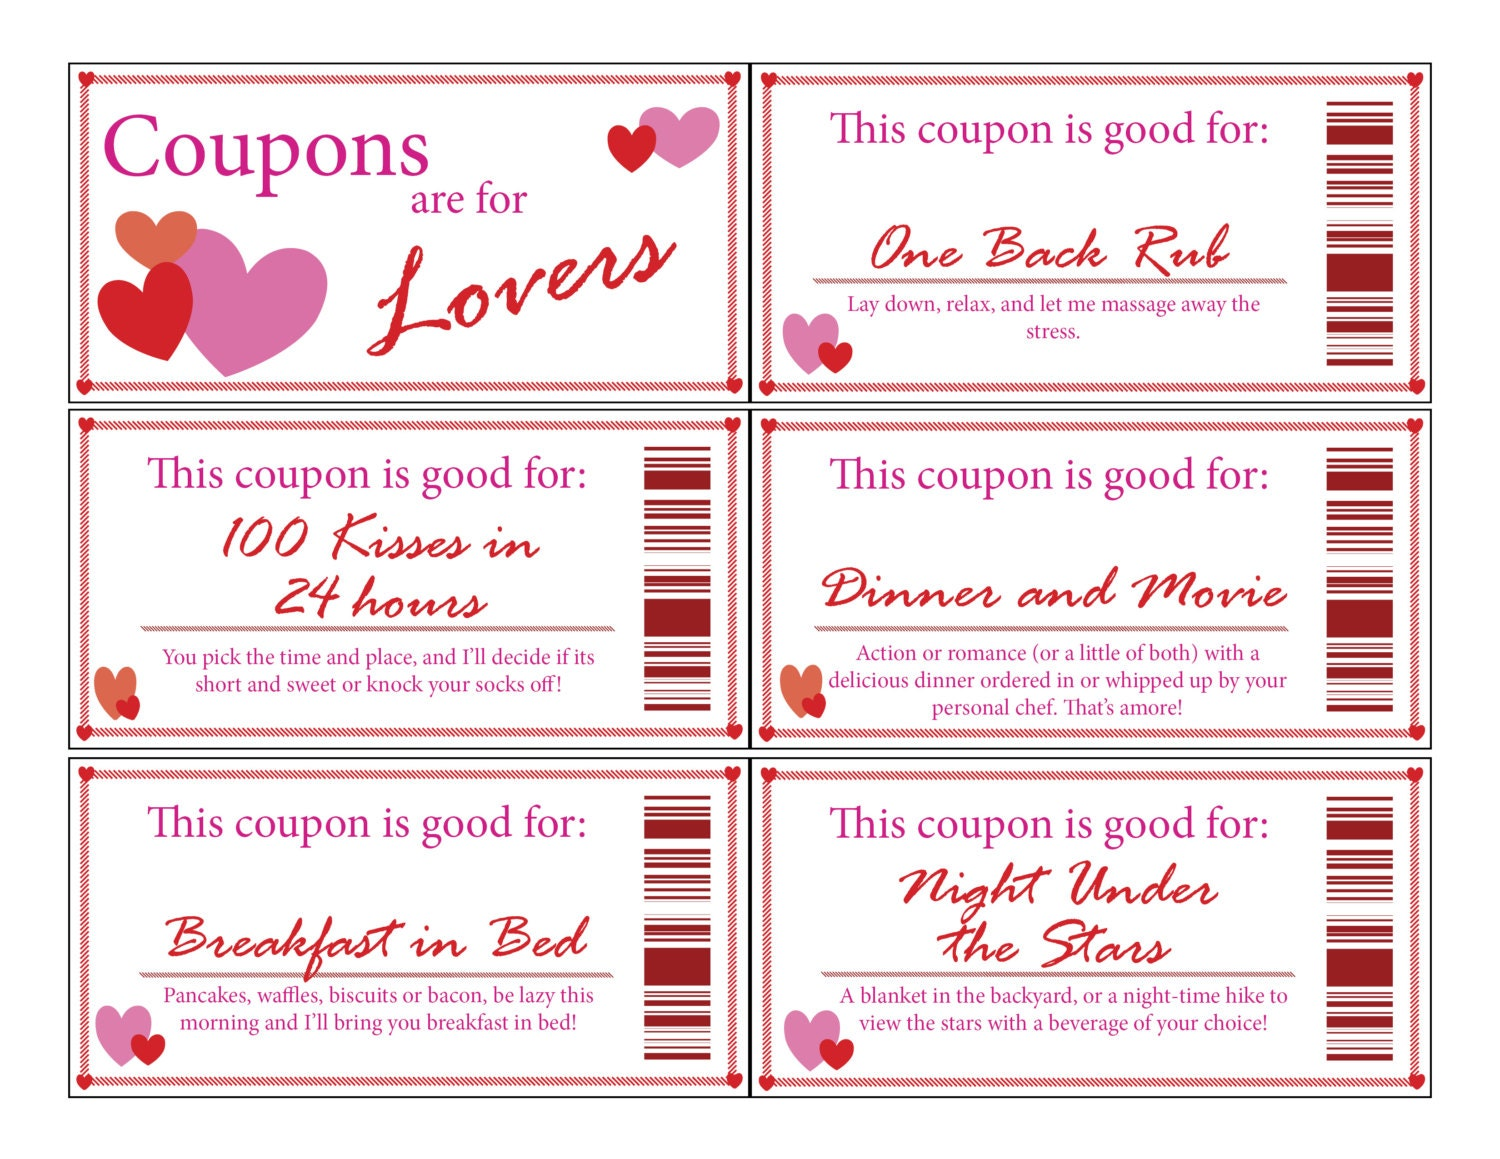 Love coupon bookprintabledigitalstocking for Love coupons for him template